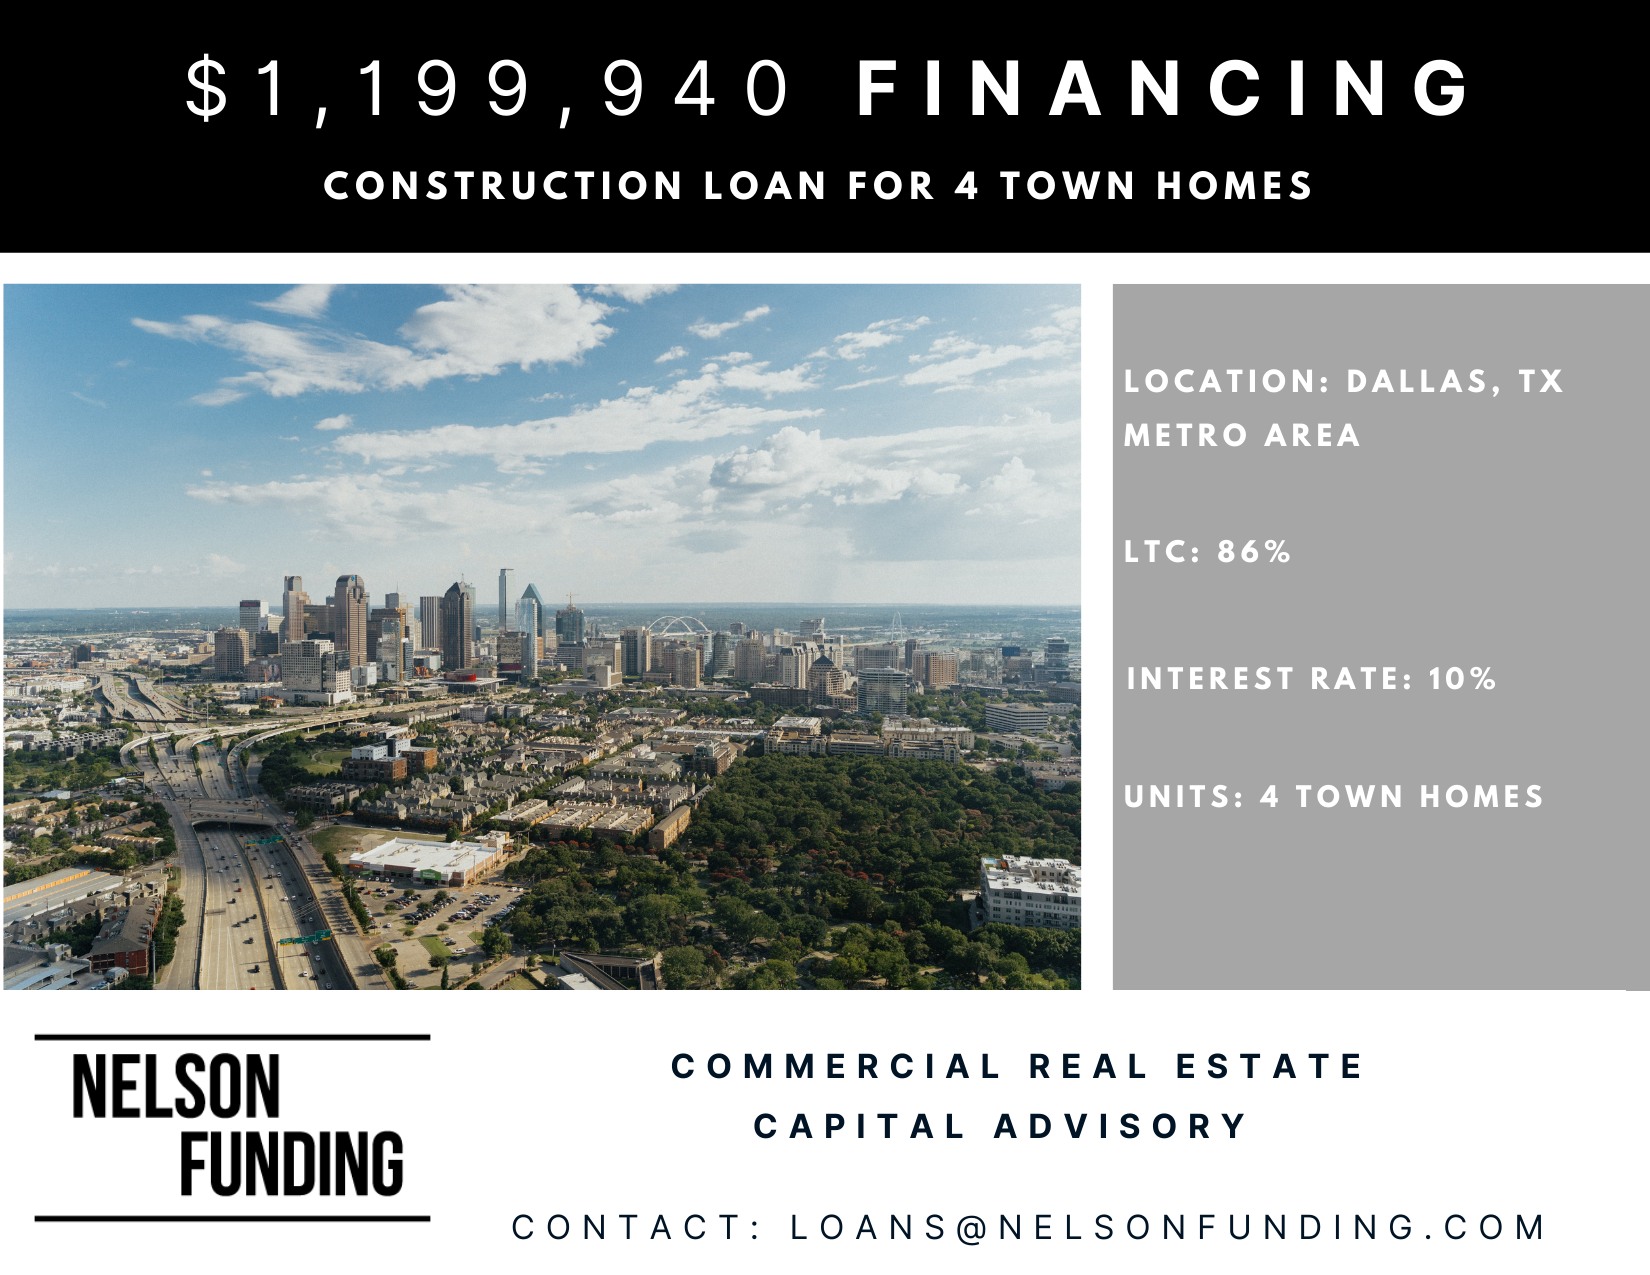 Closes Dallas Construction Loan